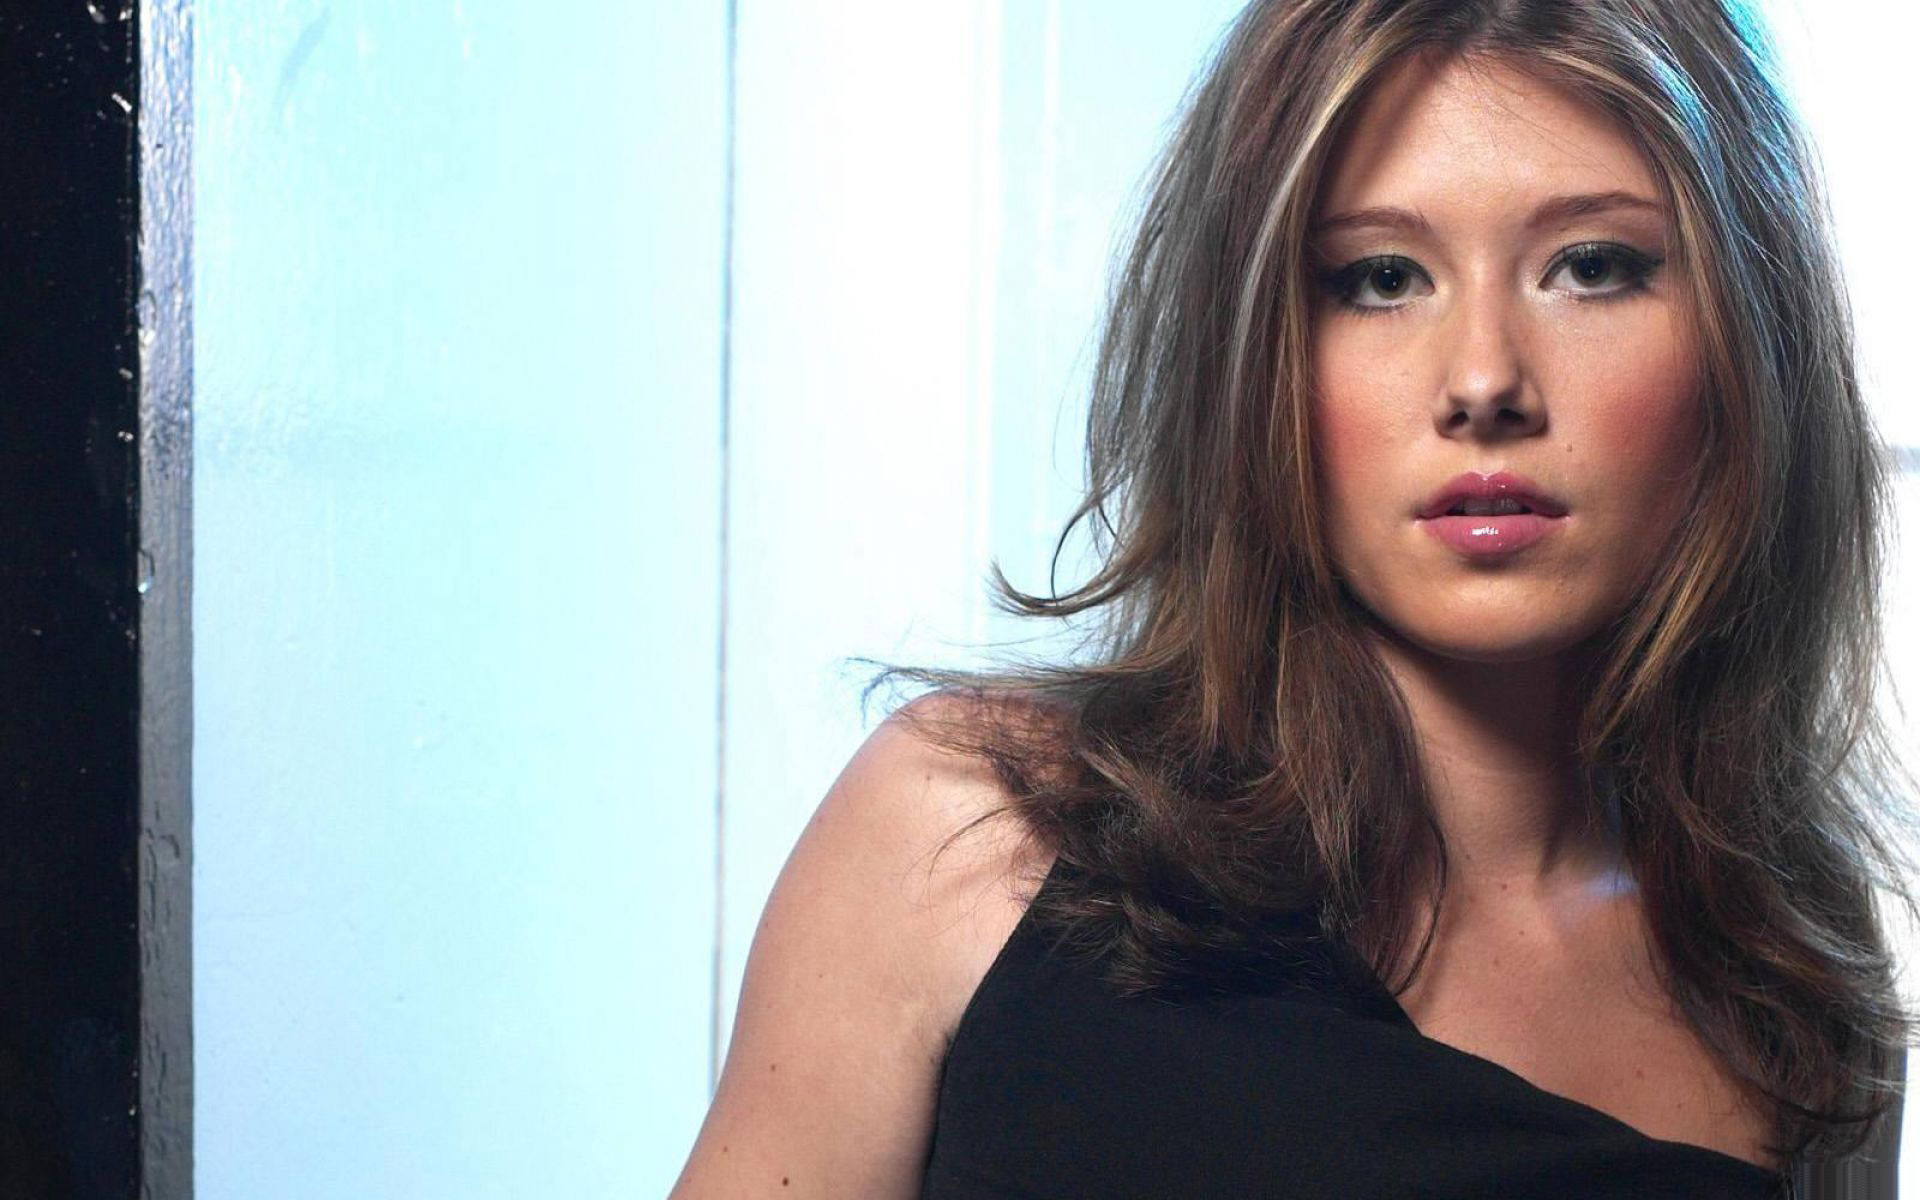 Jewel staite wallpapers full hd pictures for Jewel wallpaper